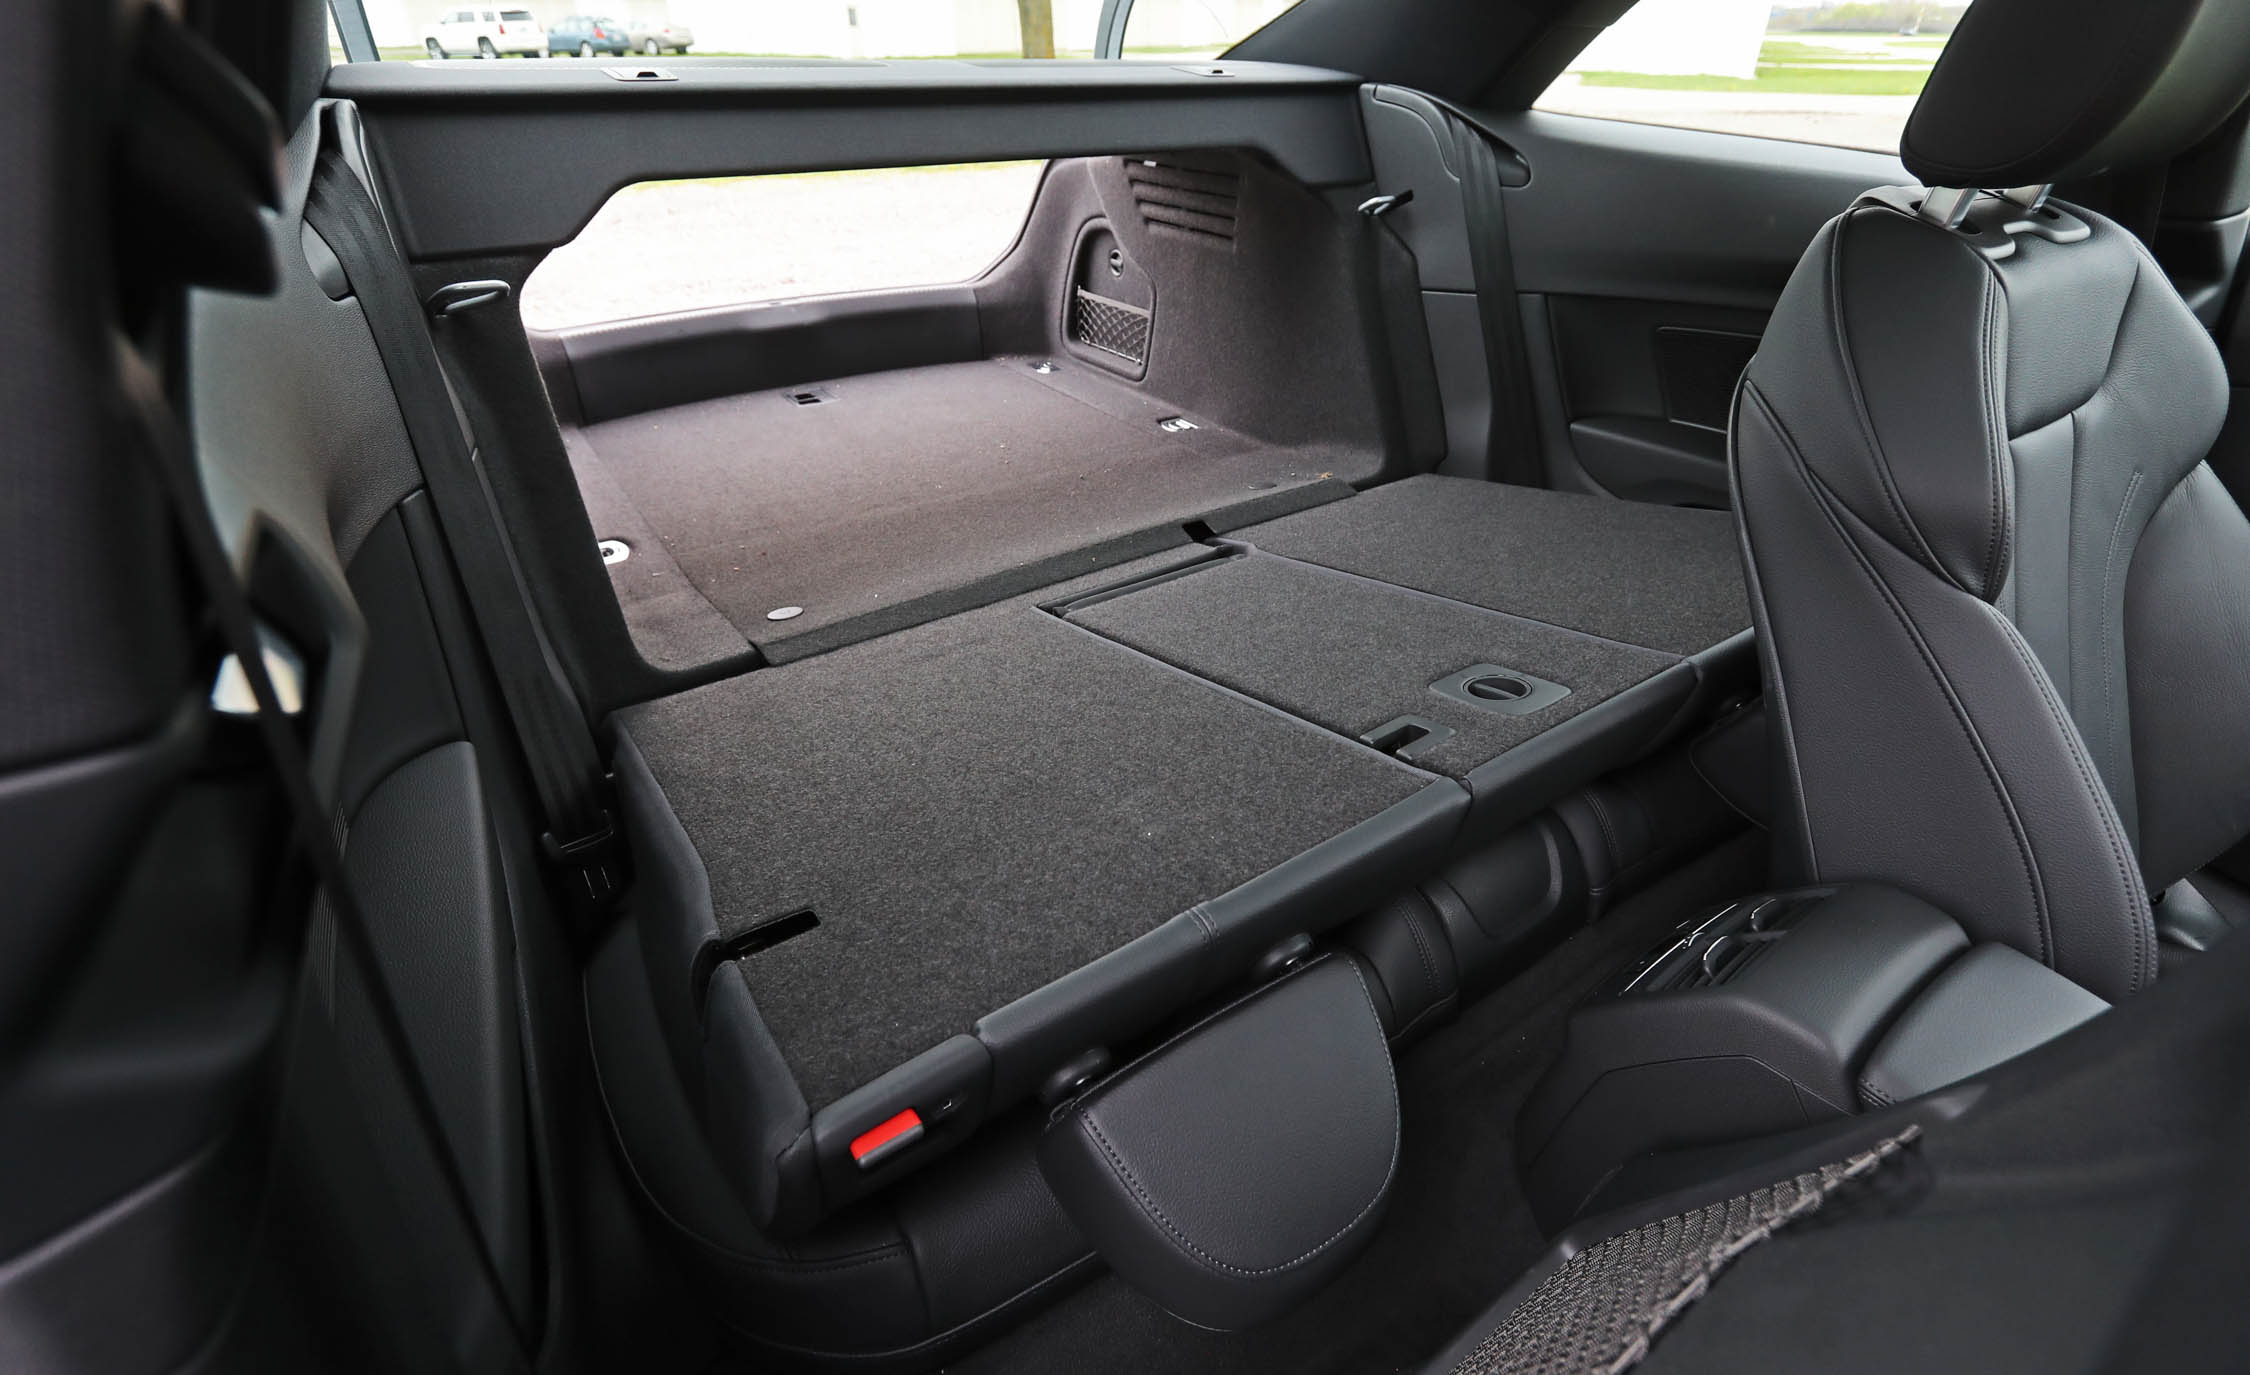 2018 Audi A5 Coupe Interior View Cargo Trunk Seats Folded From Inside (Photo 26 of 50)